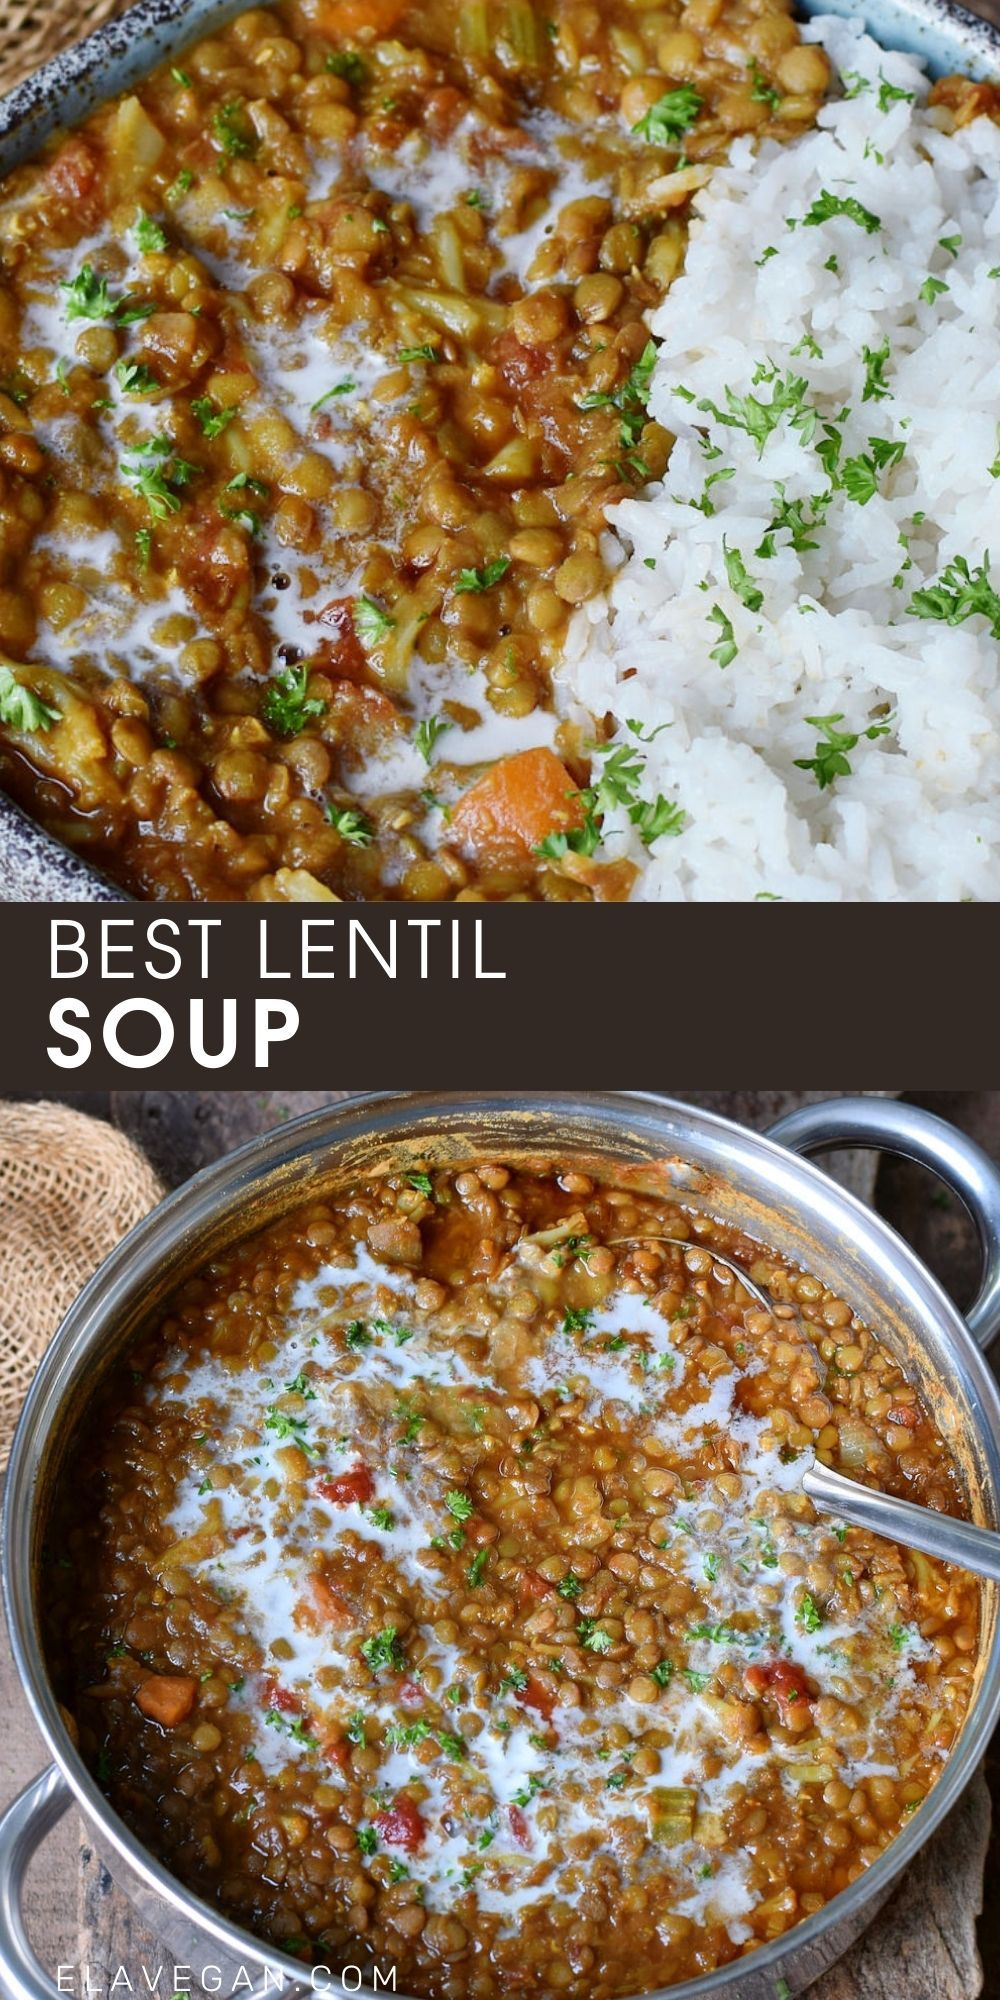 BEST LENTIL SOUP This best lentil soup recipe (tha